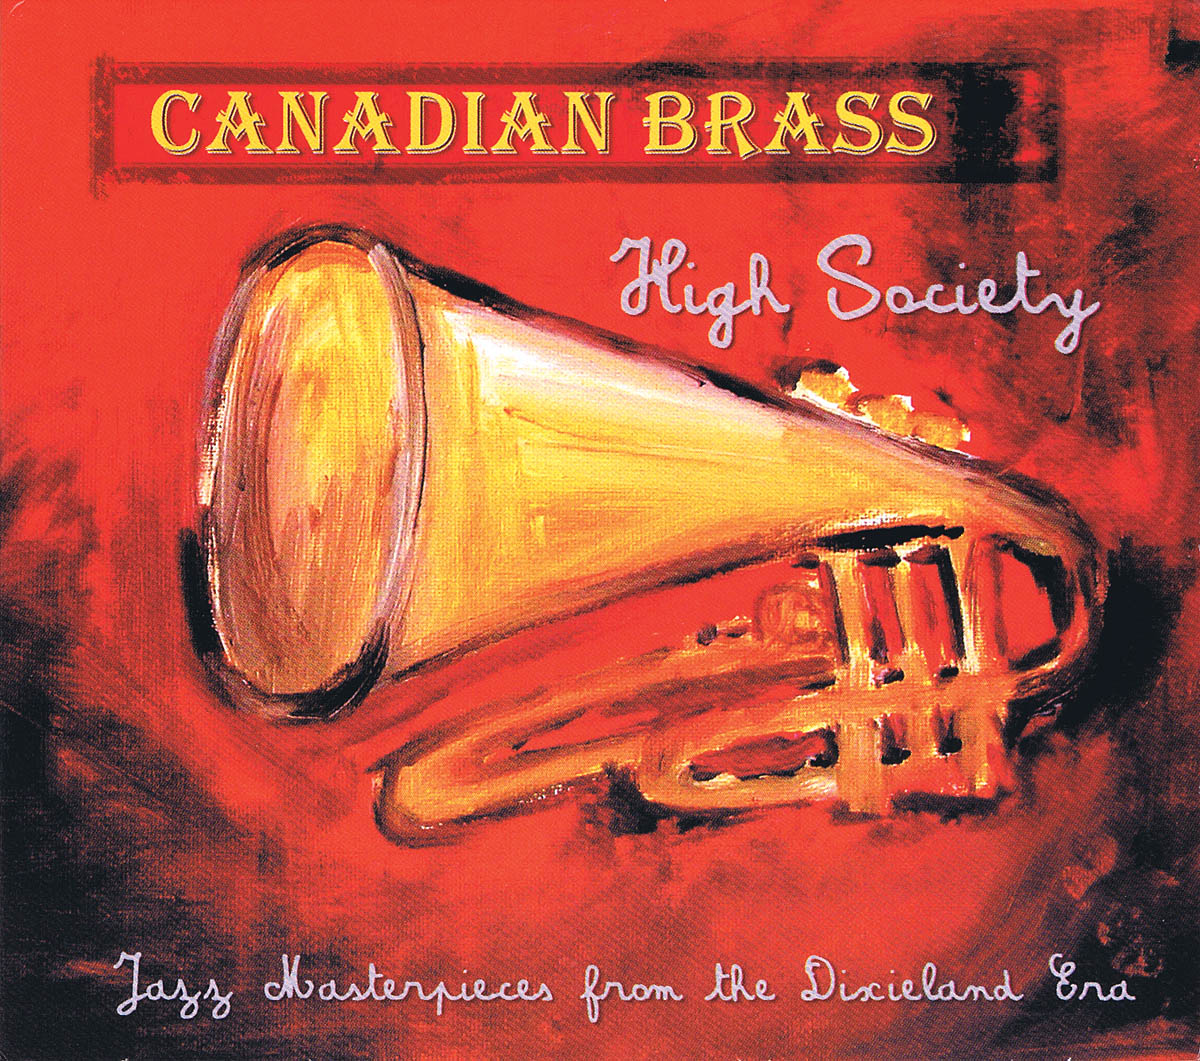 The Canadian Brass: Canadian Brass-High Society: Brass Band: CD